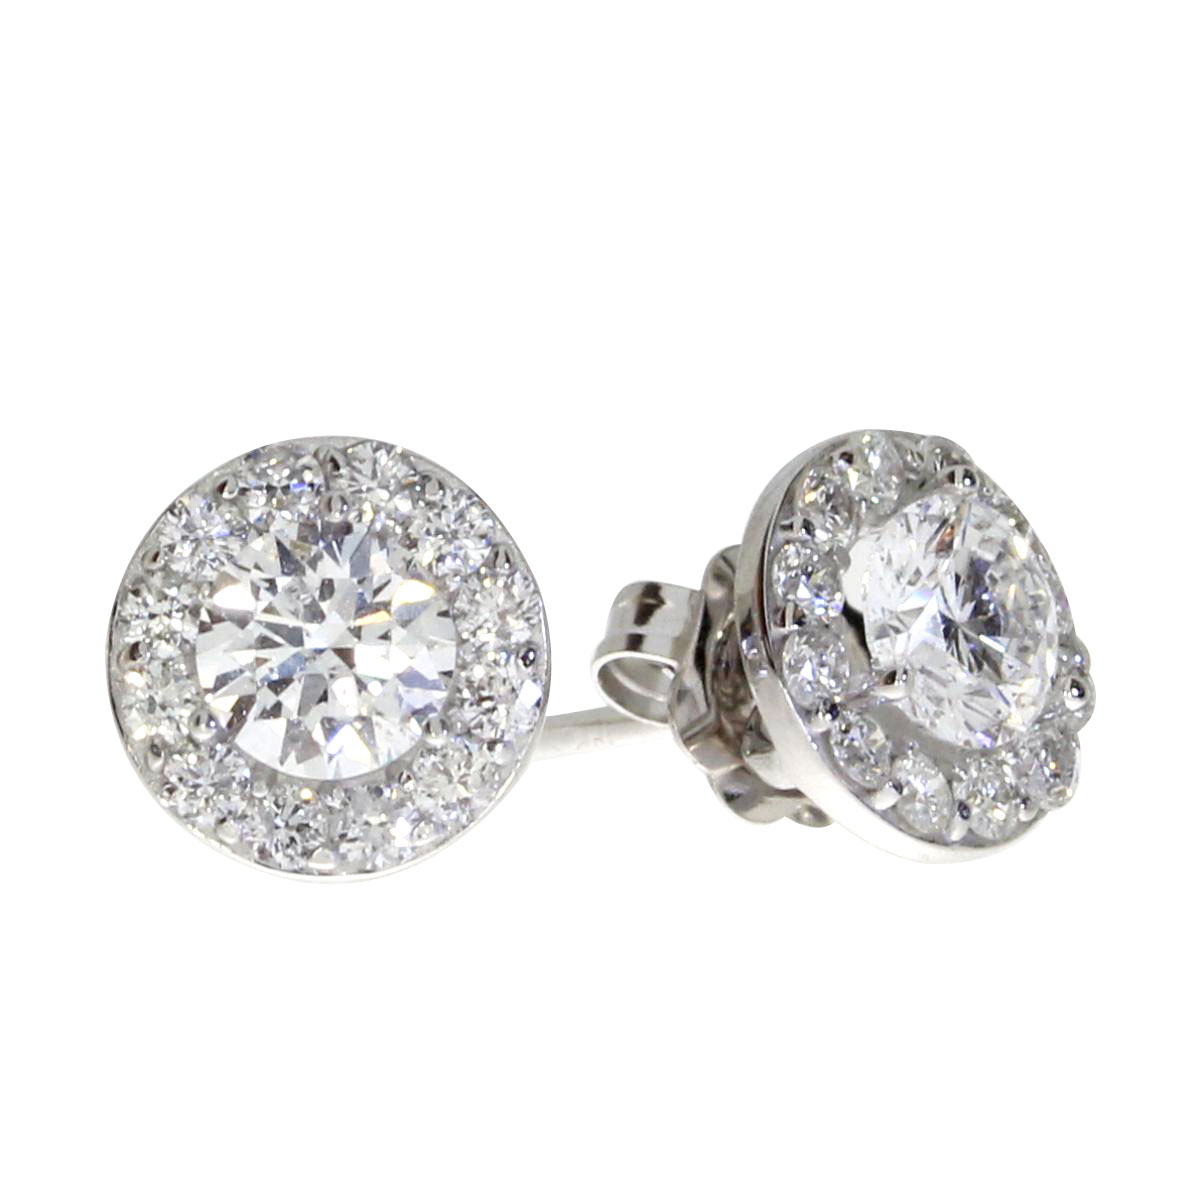 Stunning 14k white gold halo style earrings with .79 total carats of shimmering diamonds.